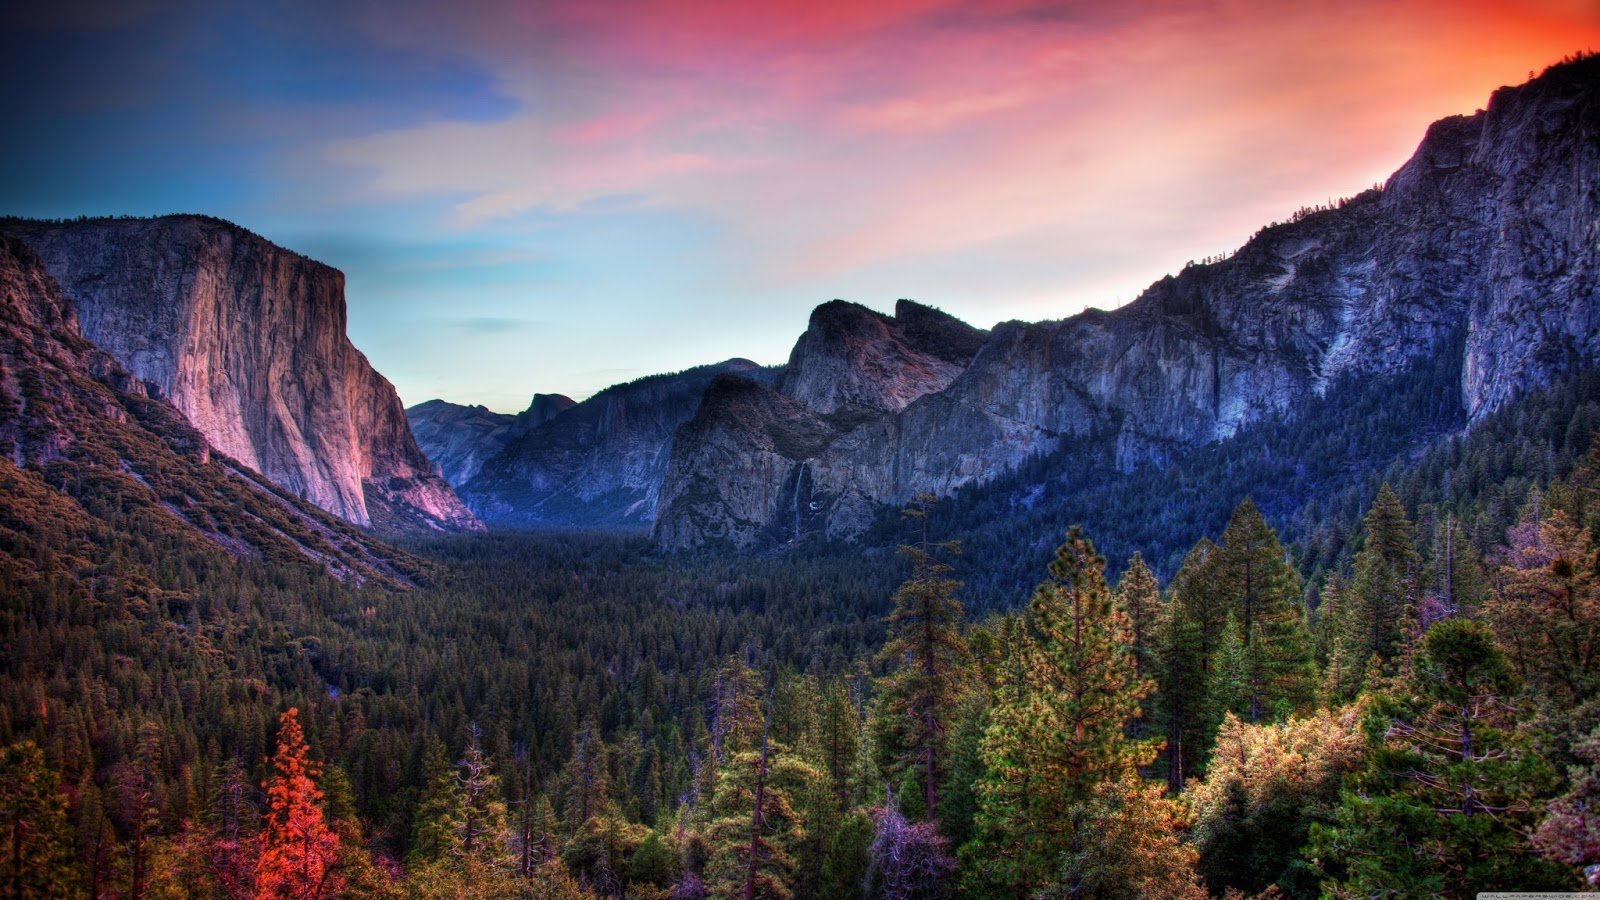 10 Best iMac 5K Retina Wallpapers - 5K Wallpapers